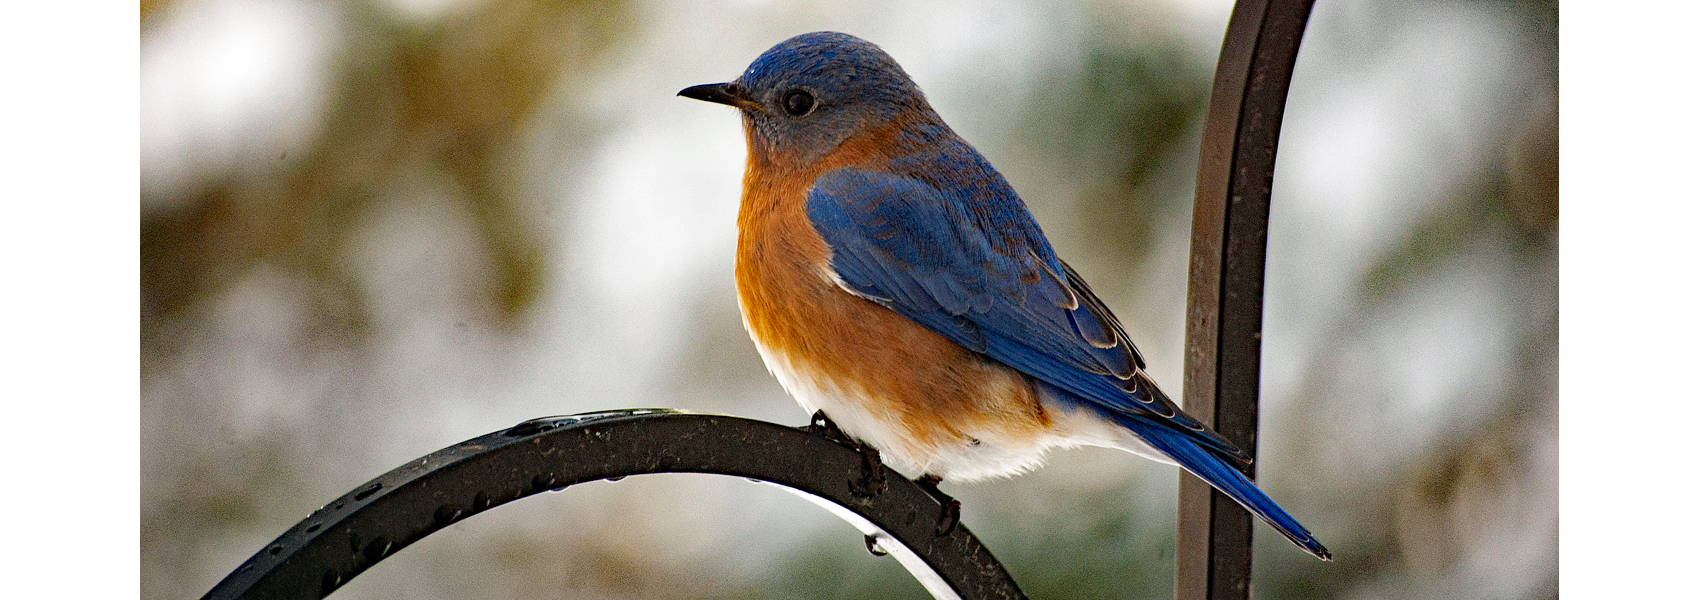 An Eastern bluebird sits on a bird feeder pole